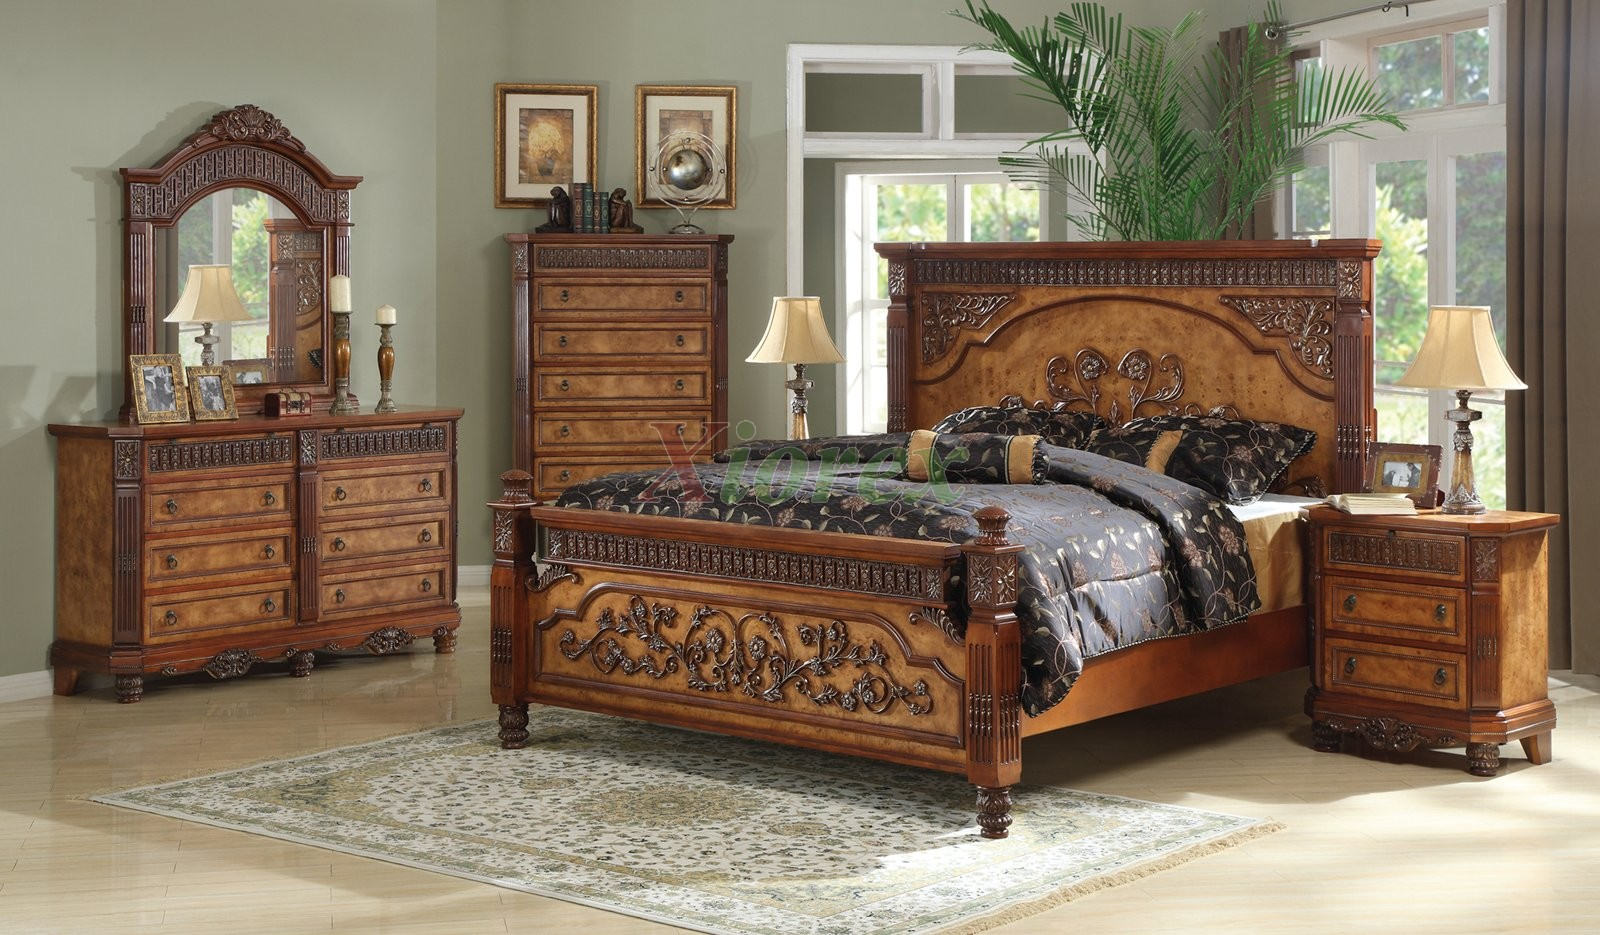 Poster bedroom furniture set 125 xiorex Bedrooms furniture